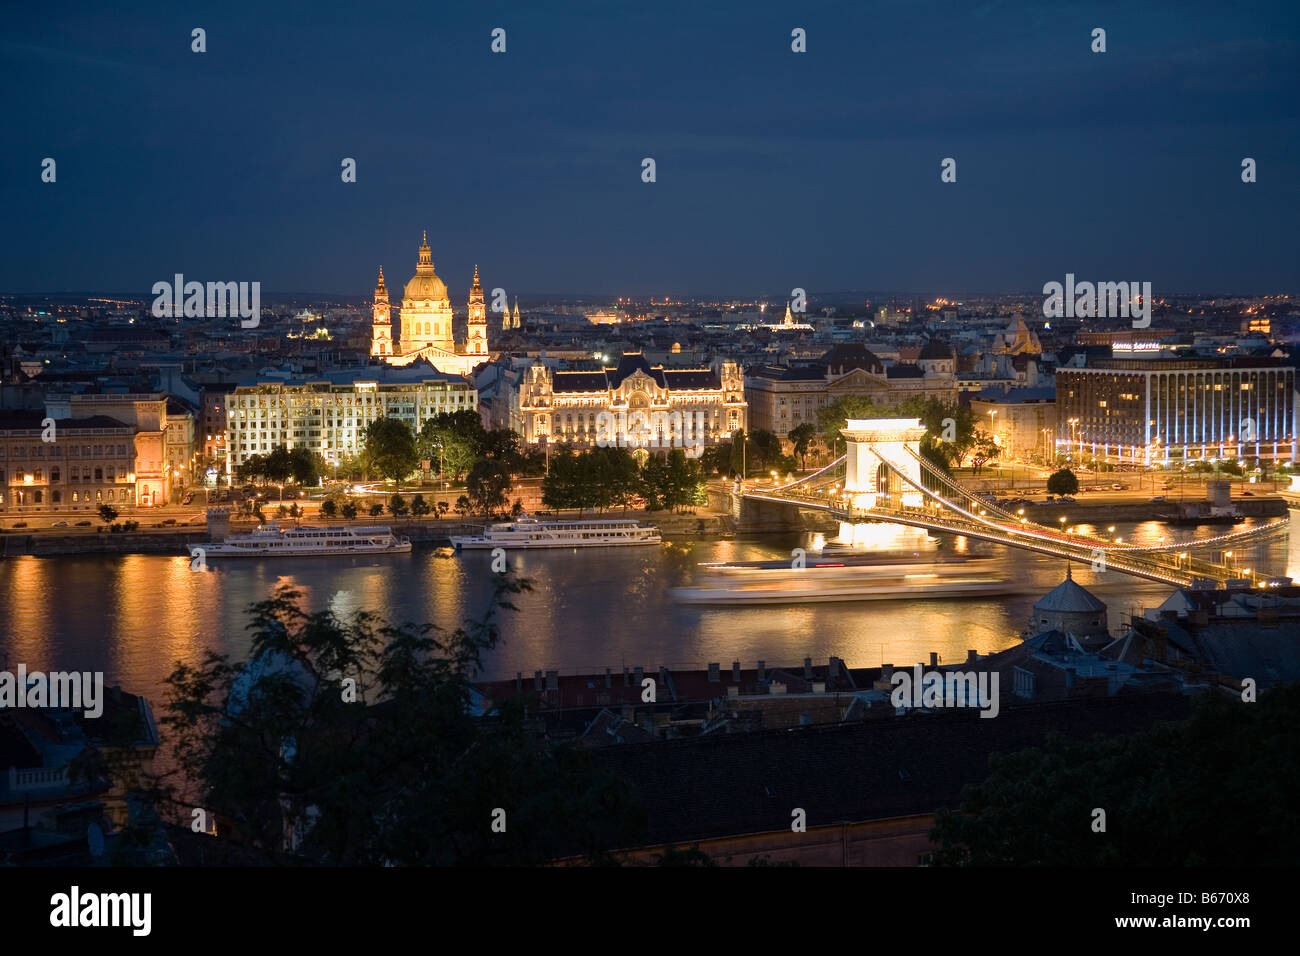 Budapest at night - Stock Image